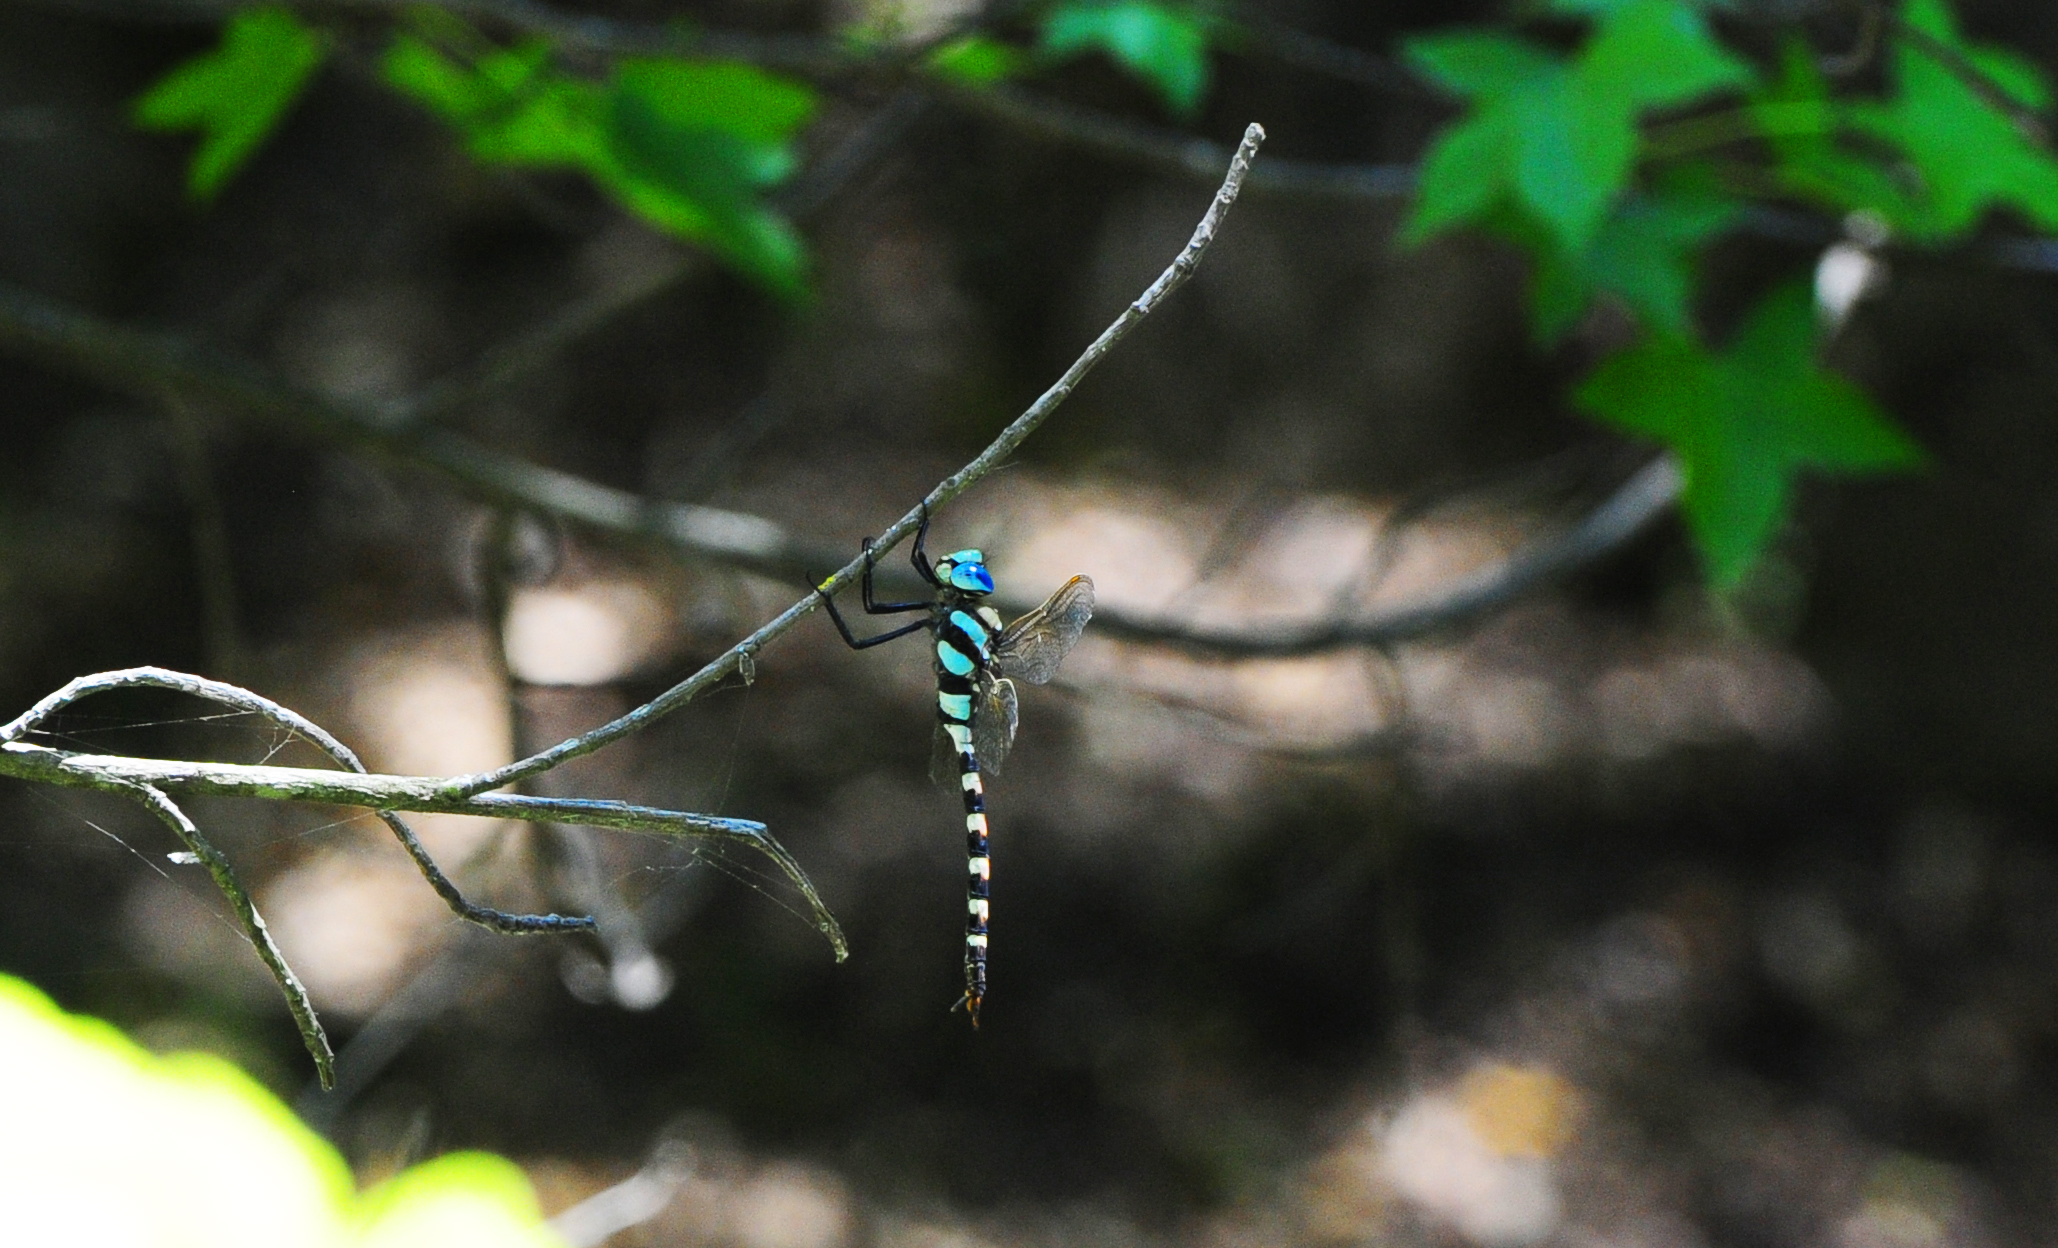 A dragonfly at Butterfly Valley